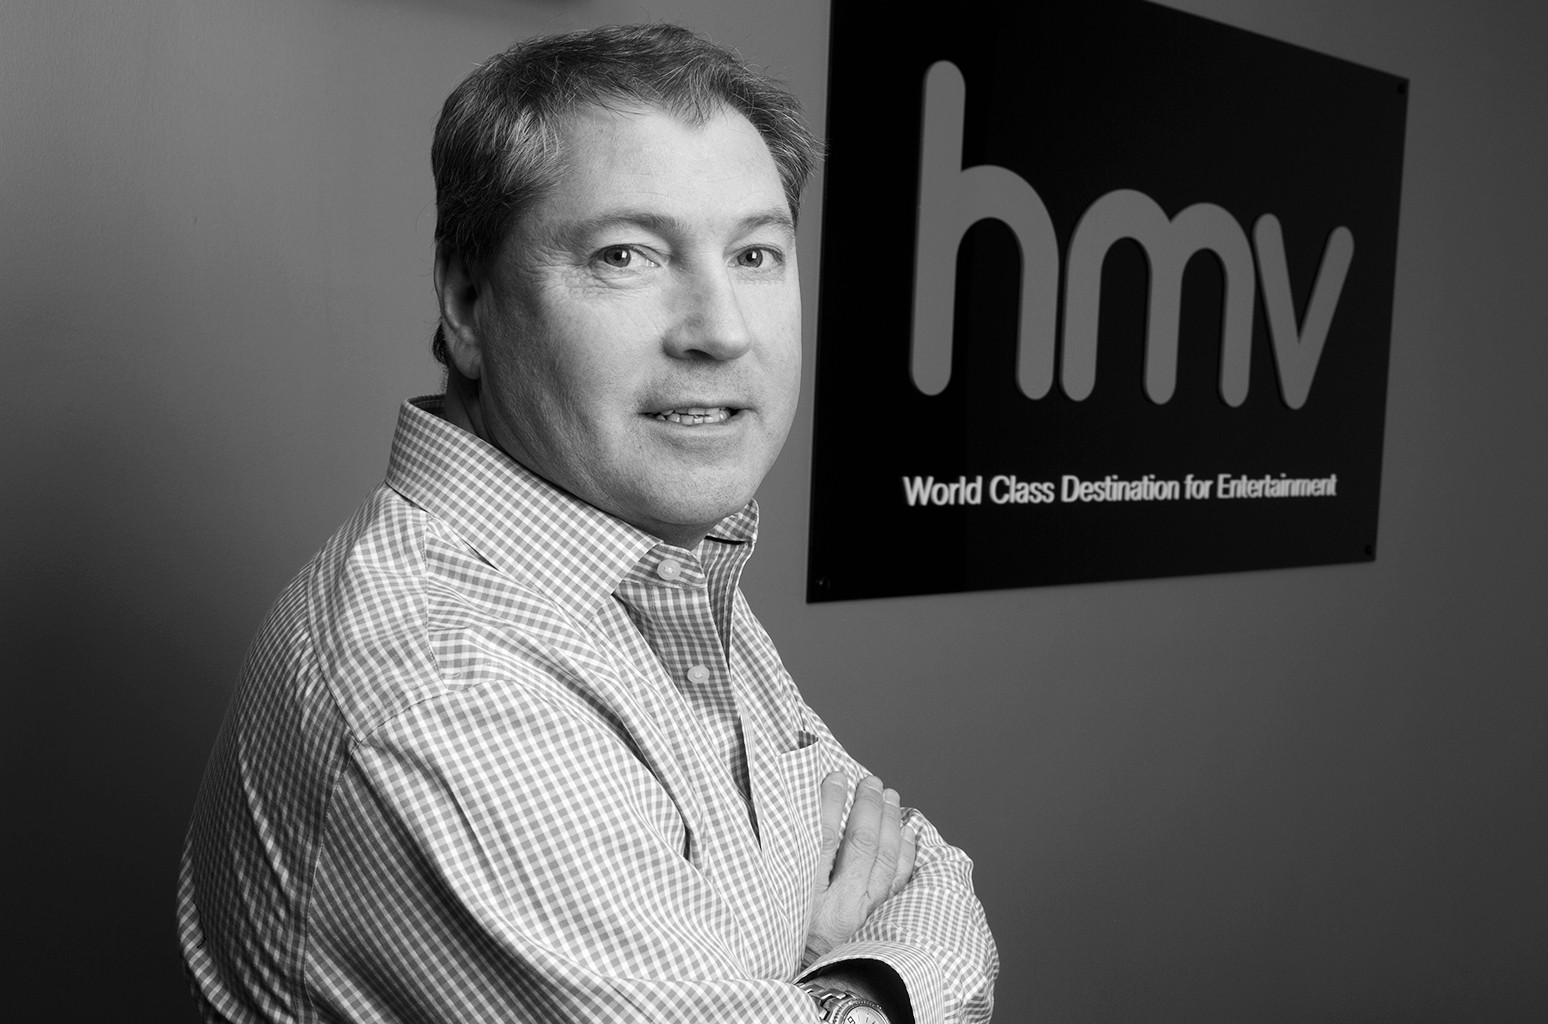 HMV CEO, Nick Williams